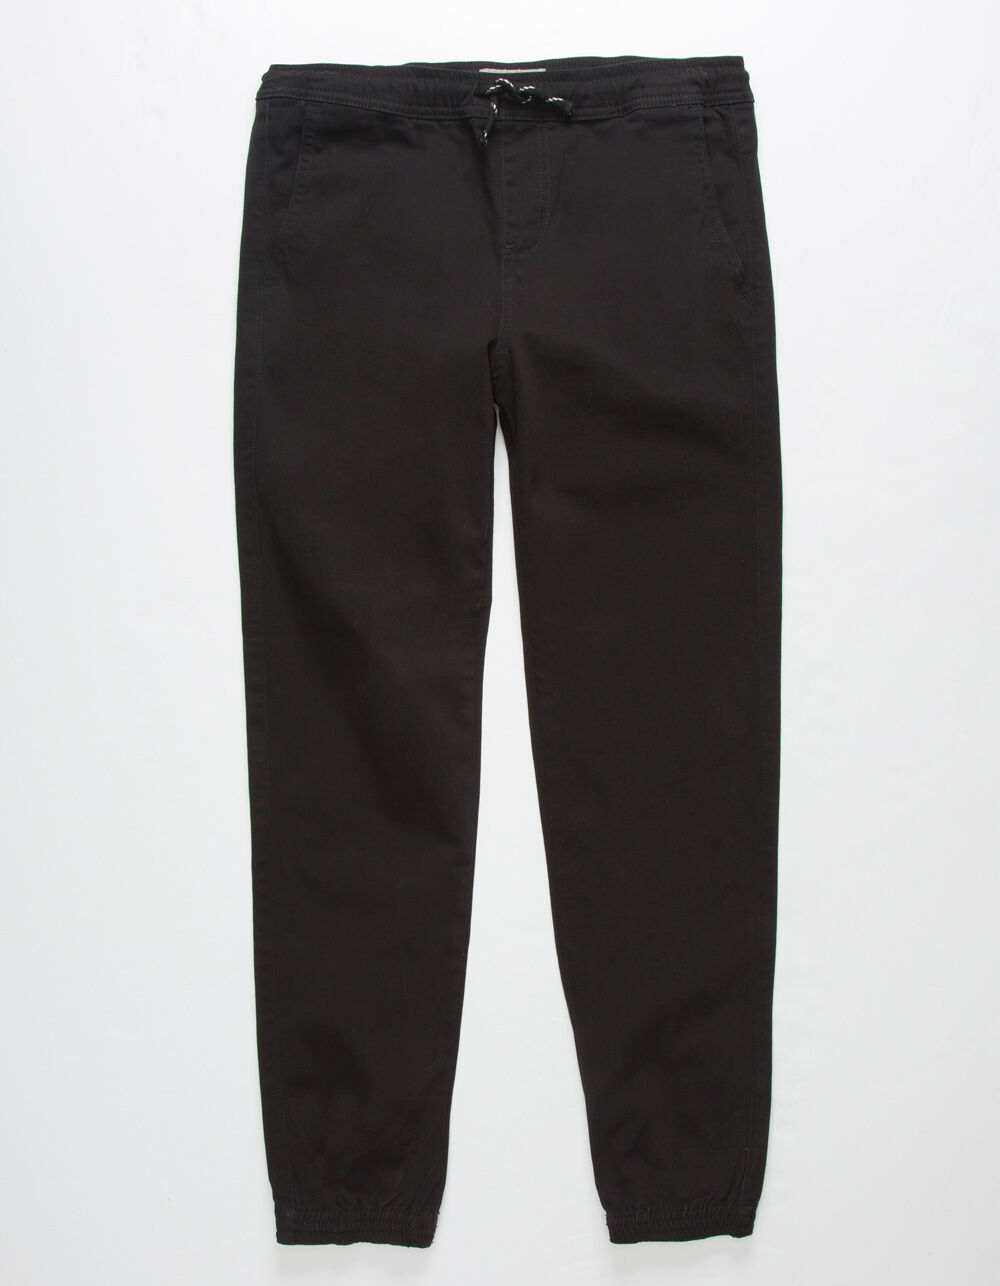 CHARLES AND A HALF Classic Black Boys Jogger Pants